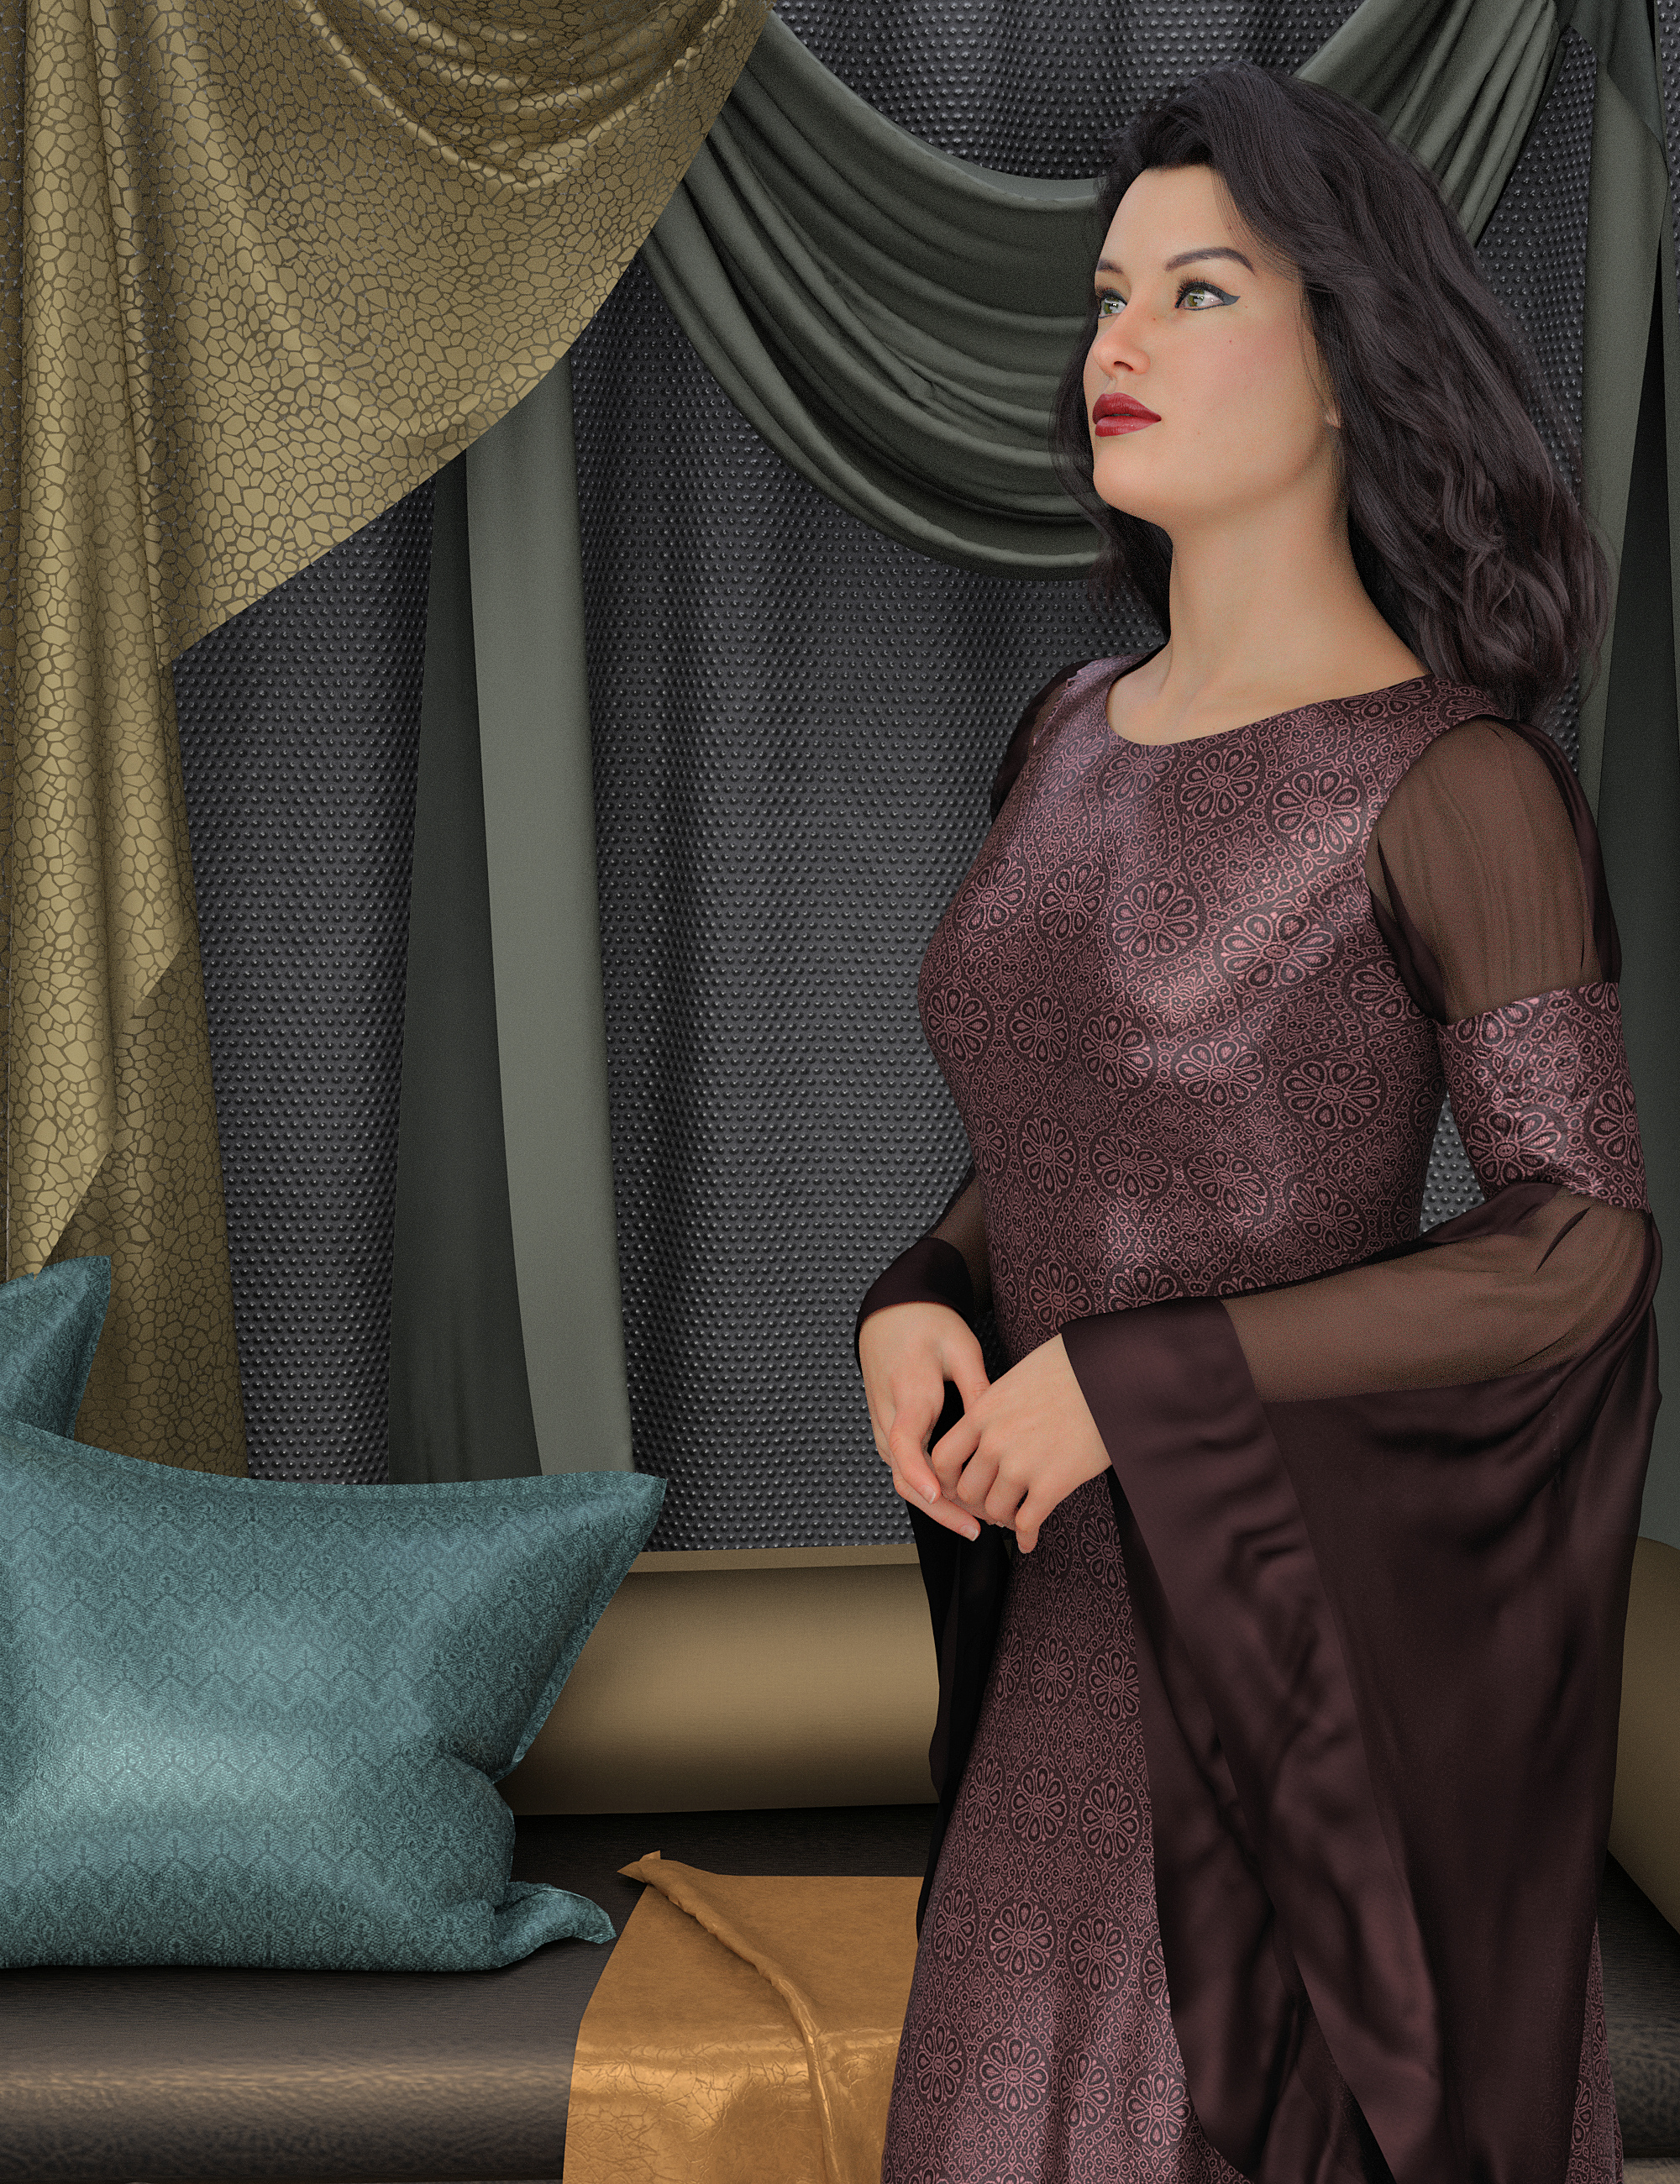 Dark Worlds Fabric Shaders by: Khory, 3D Models by Daz 3D